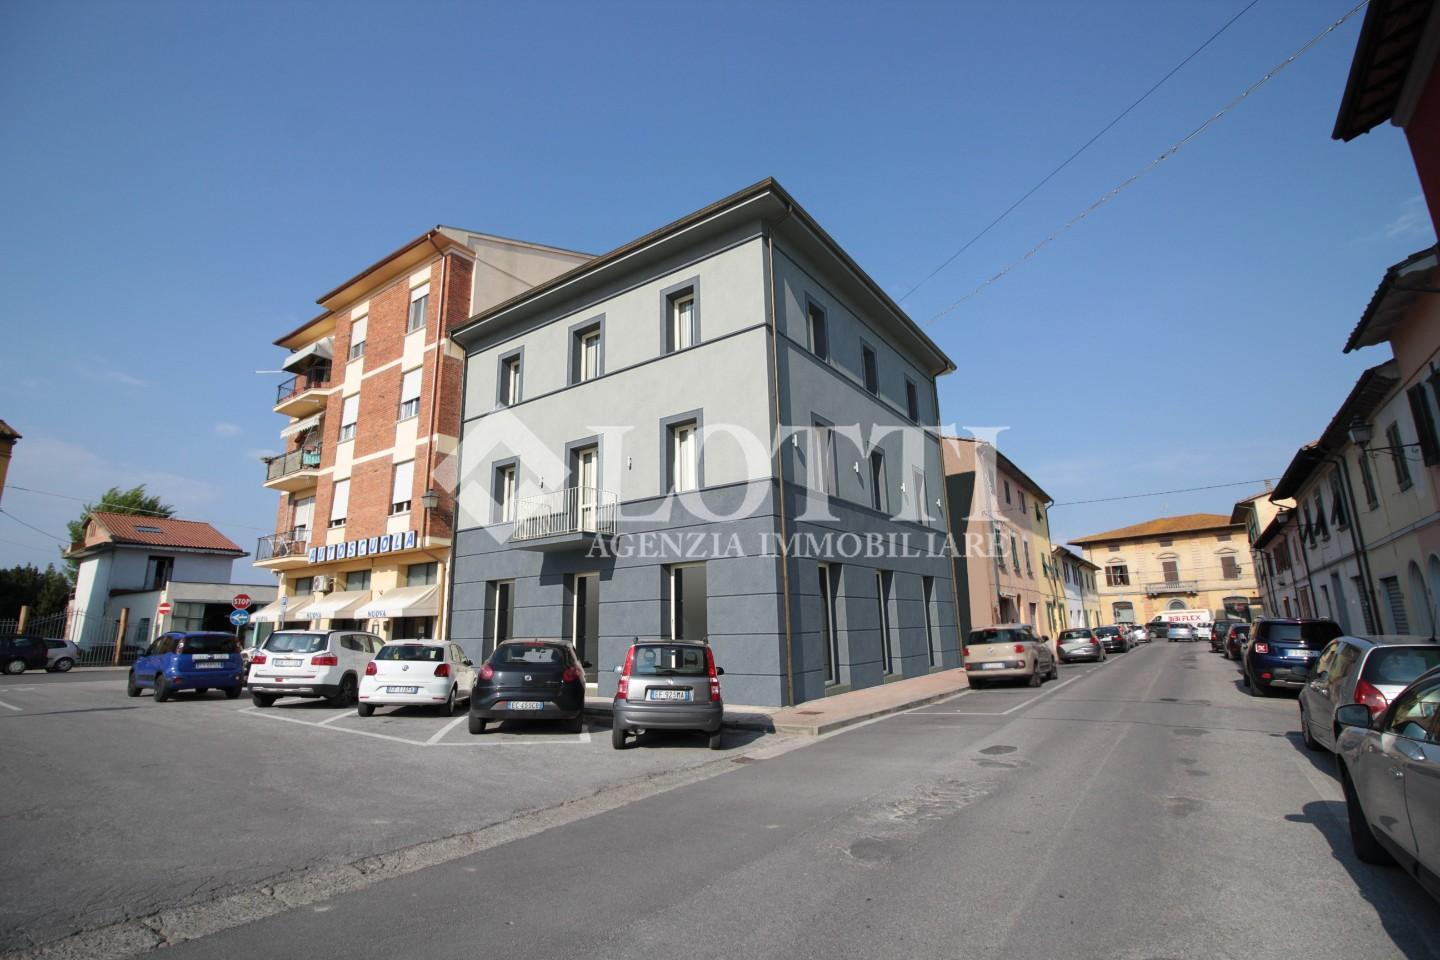 Apartment for sale, ref. 615-C